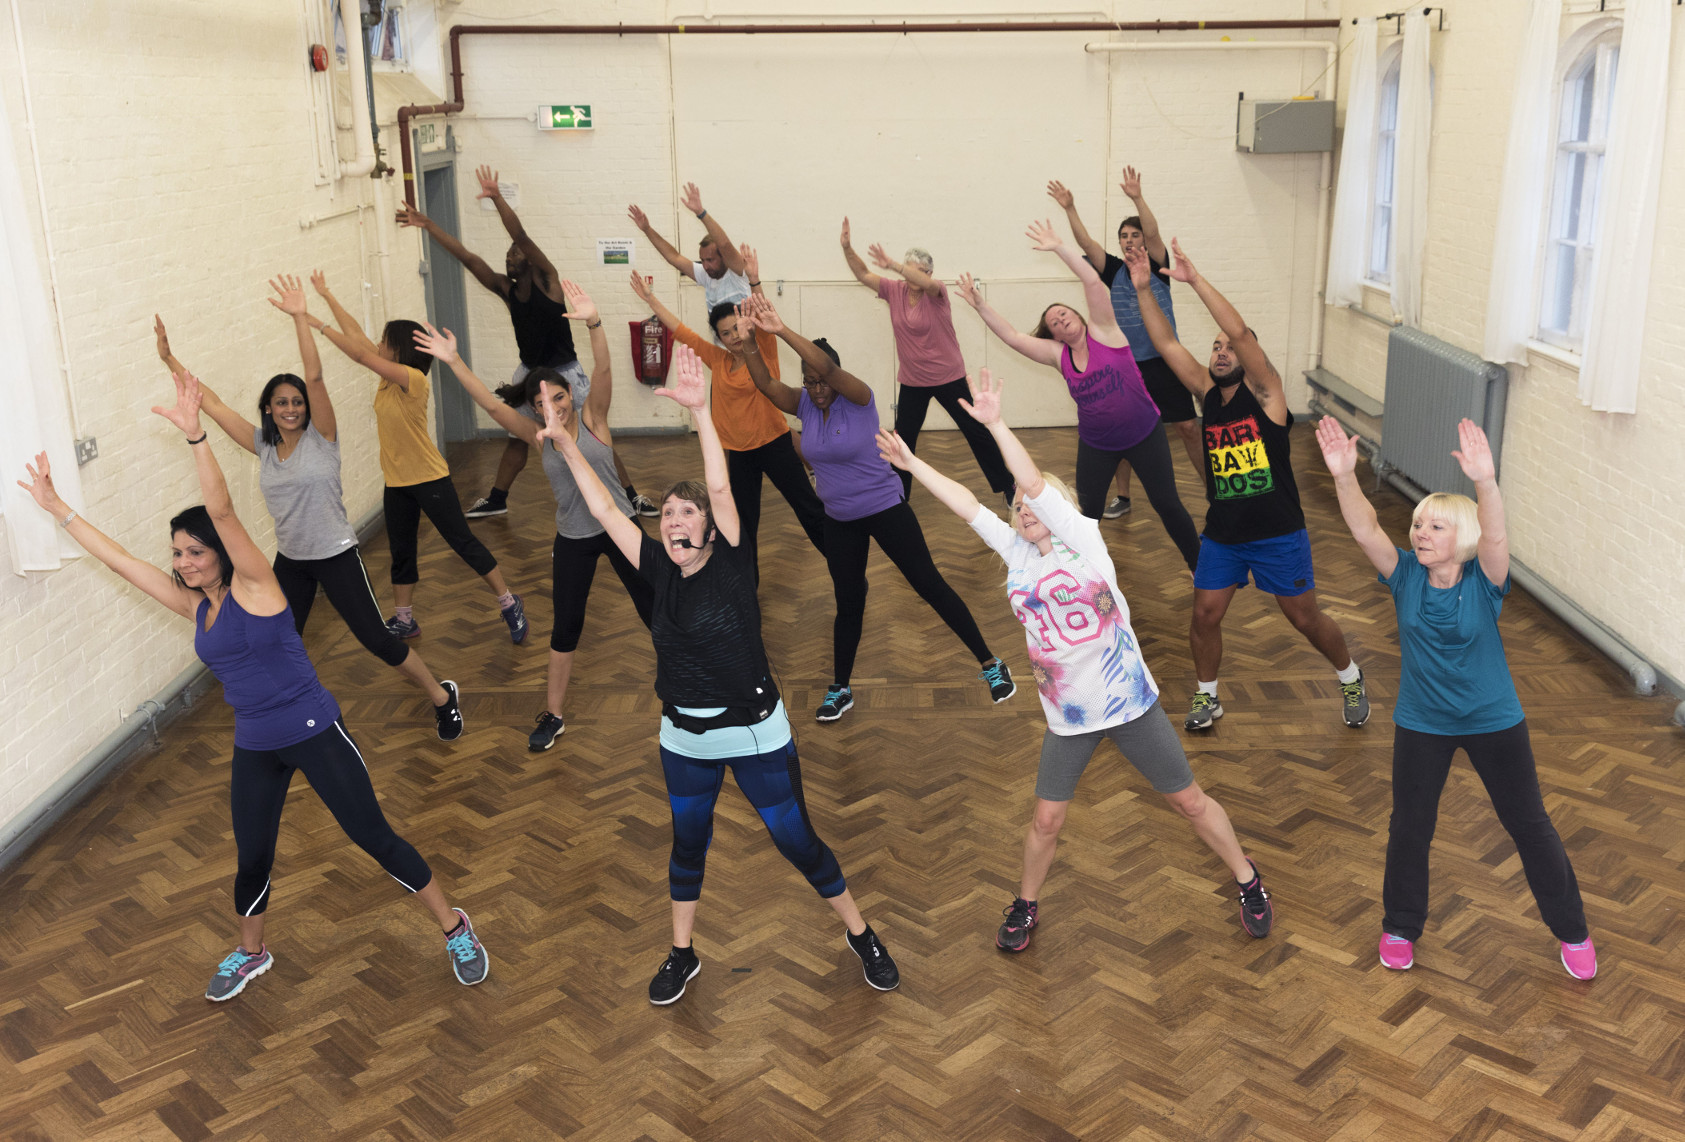 BBC Oneness, Exercise Class, Avonmouth, Photographer: Martin Parr